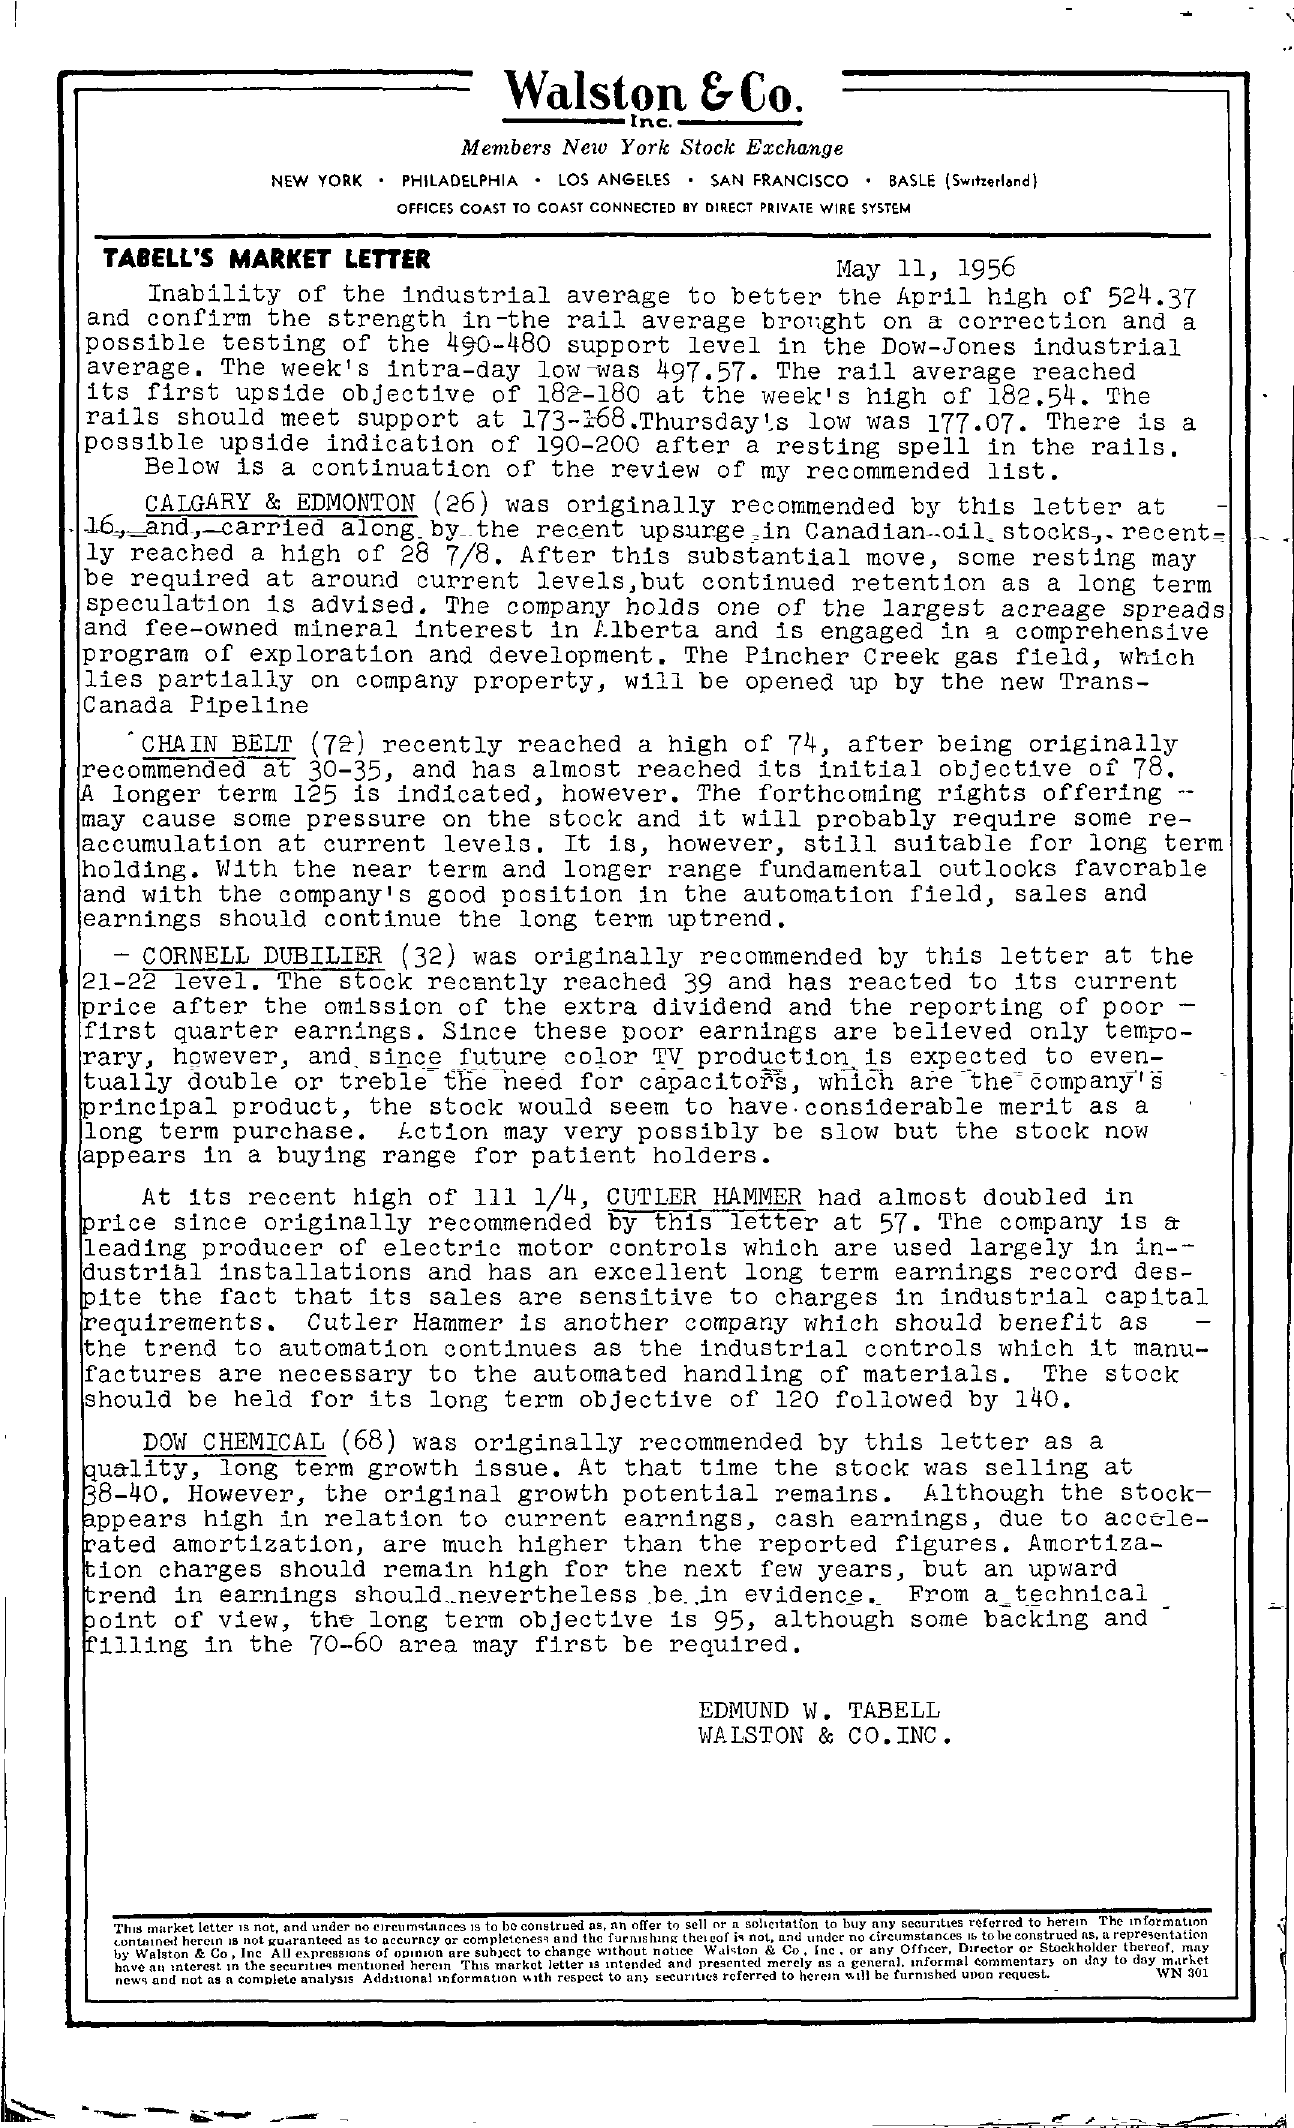 Tabell's Market Letter - May 11, 1956